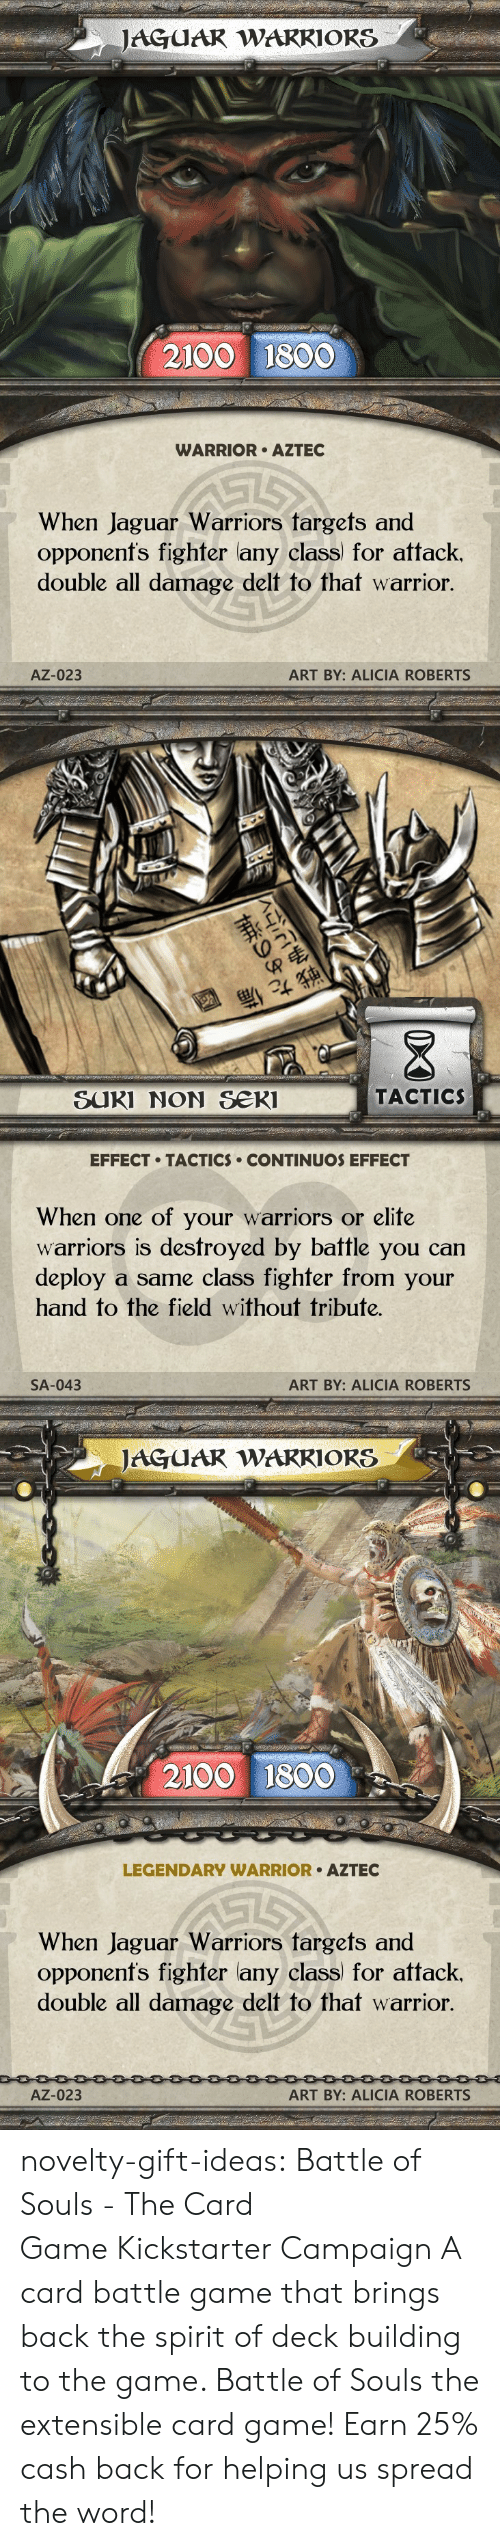 Alicia: JAGUAR WARRIORS  2100 1800  WARRIOR AZTEC  When Jaguar Warriors targets and  opponenfs fighter lany class for attack.  double all damage delt to that warrior.  AZ-023  ART BY: ALICIA ROBERTS   退  SUKI NON Se  TACTIC  EFFECT TACTICS CONTINUOS EFFECT  When one of your warriors or elite  warriors is destroyed by battle you can  deploy a same class fighfer from your  hand to the field without tribute.  SA-043  ART BY: ALICIA ROBERTS   JAGUAR WAKRIORS  2100 1800  LEGENDARY WARRIOR AZTEC  When Jaguar Warriors fargets and  opponenfs fighter lany class) for attack.  double all damage delt to that warrior  AZ-023  ART BY: ALICIA ROBERTS novelty-gift-ideas: Battle of Souls - The Card GameKickstarter Campaign A card battle game that brings back the spirit of deck building to the game. Battle of Souls the extensible card game!   Earn 25% cash back for helping us spread the word!